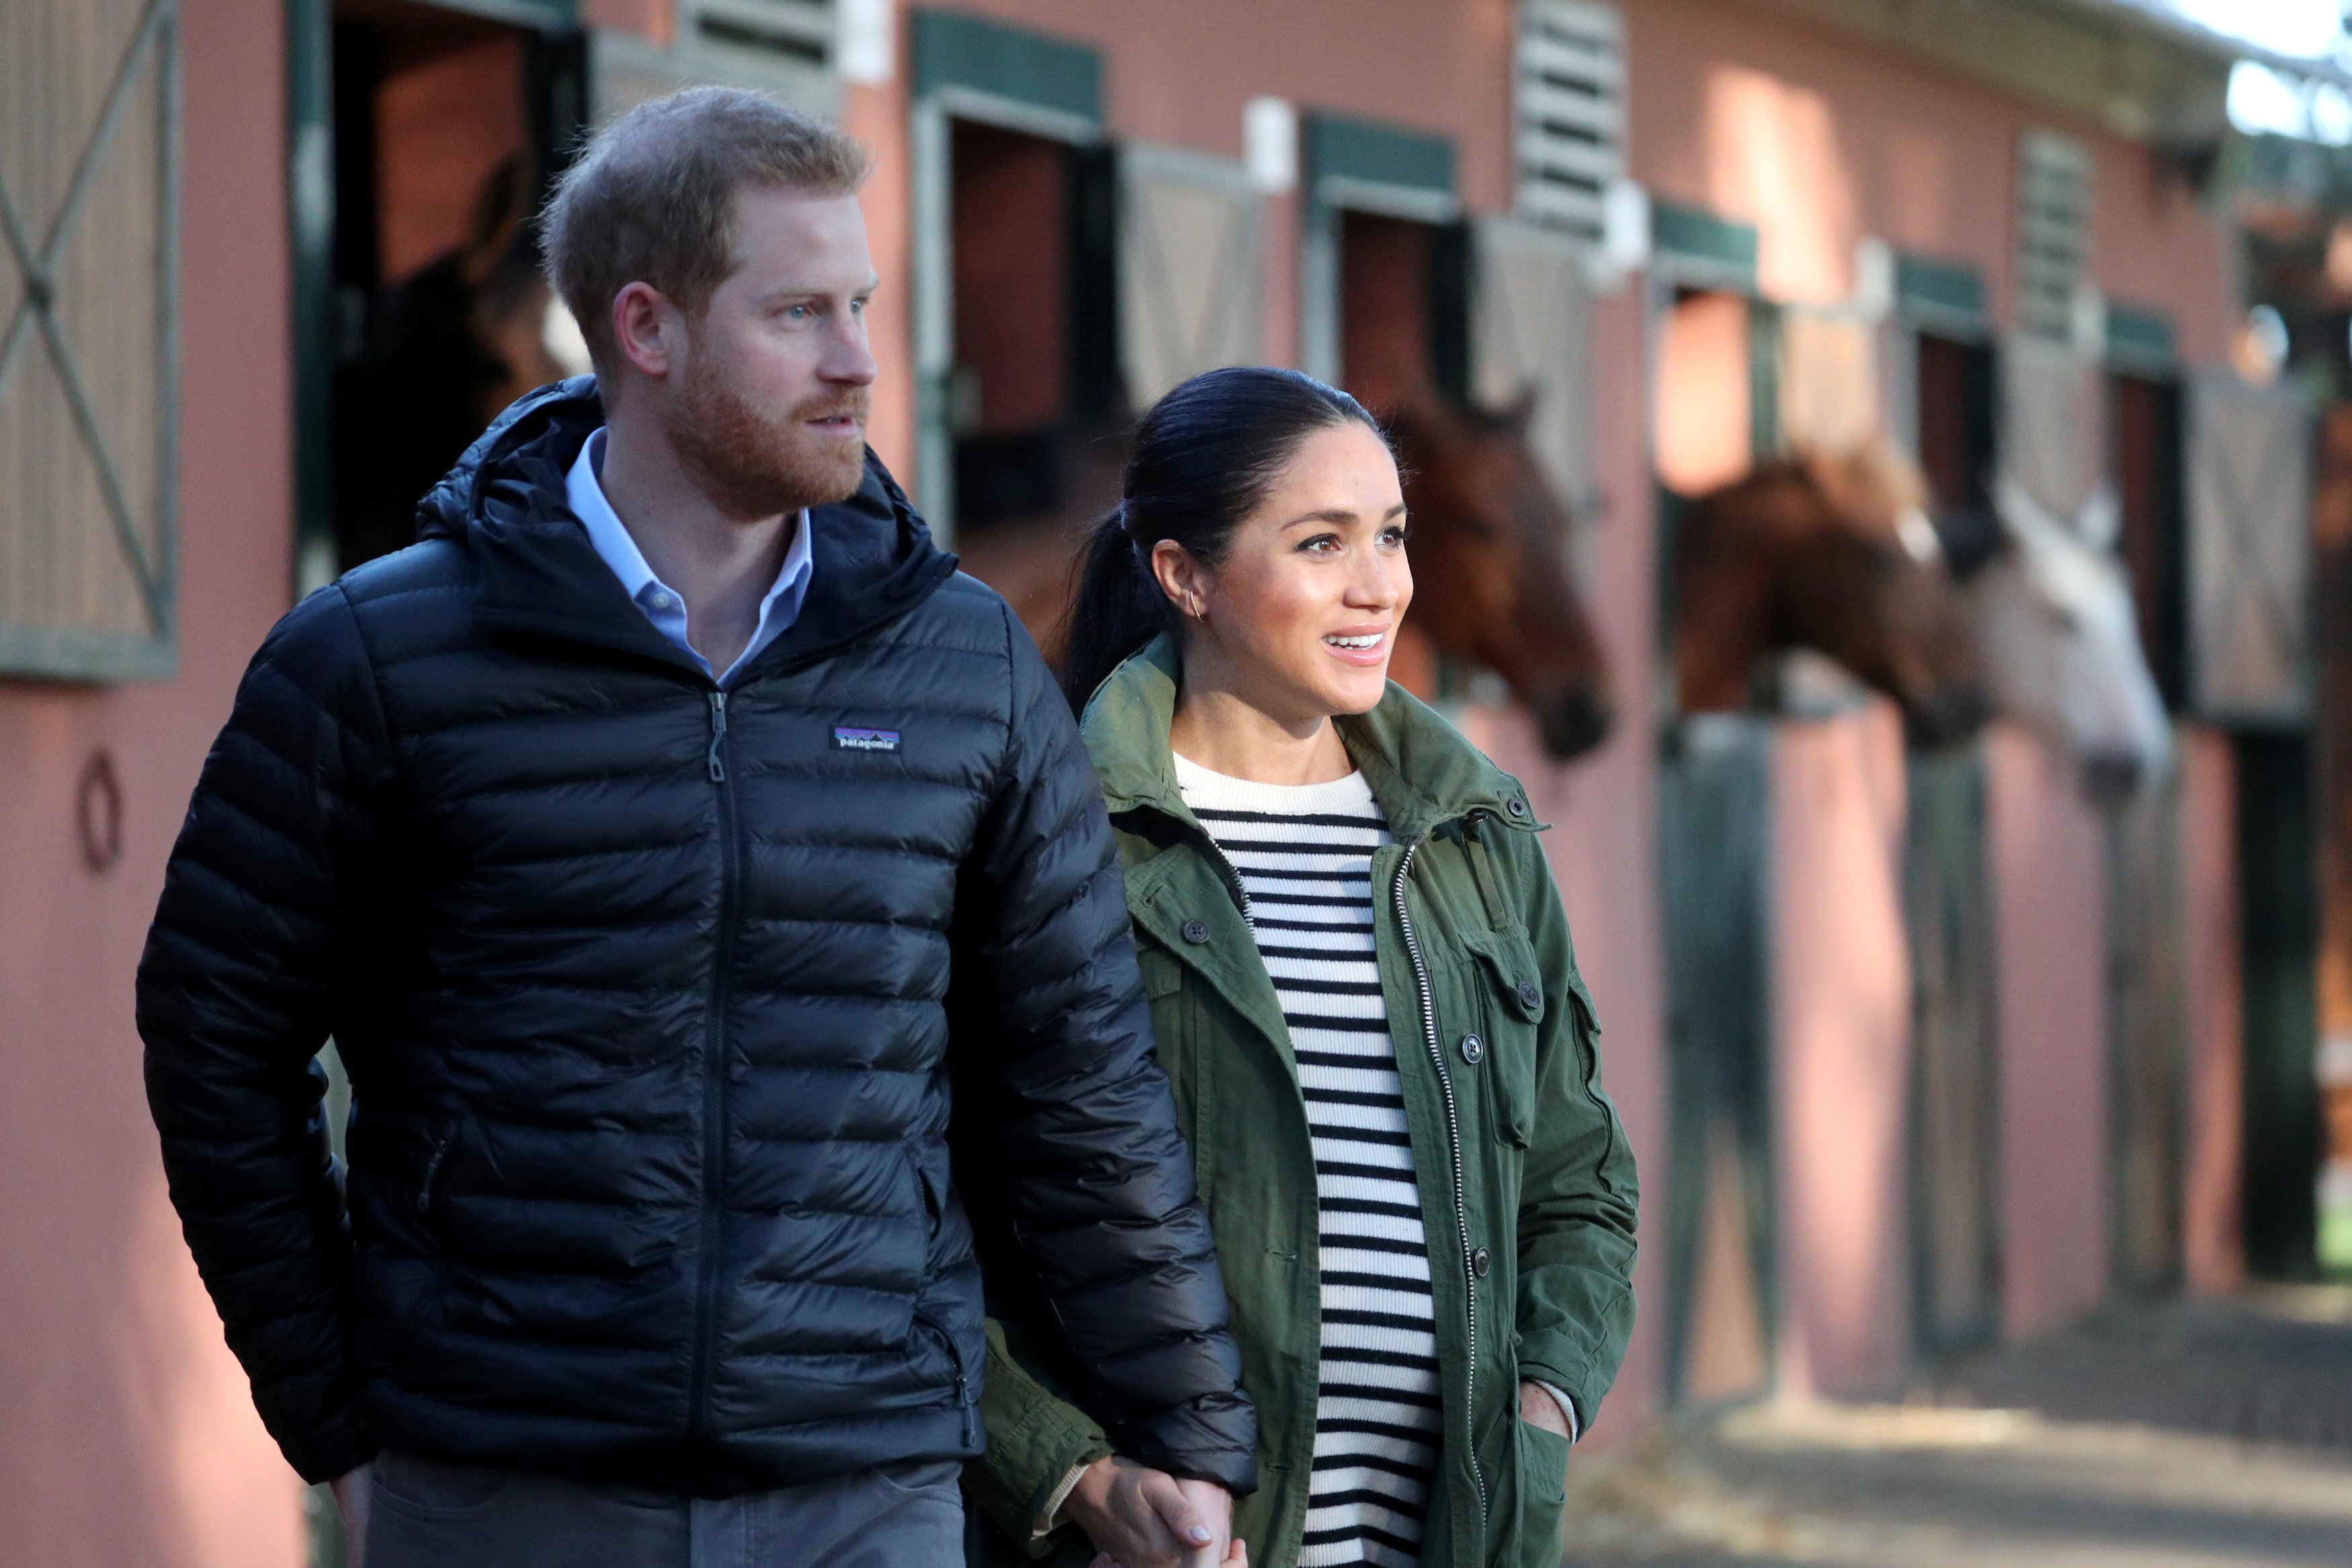 Prince Harry and Meghan Markle pictured at the Moroccan Royal Federation of Equitation Sports, 2019, Rabat Morocco.   Photo: Getty Images